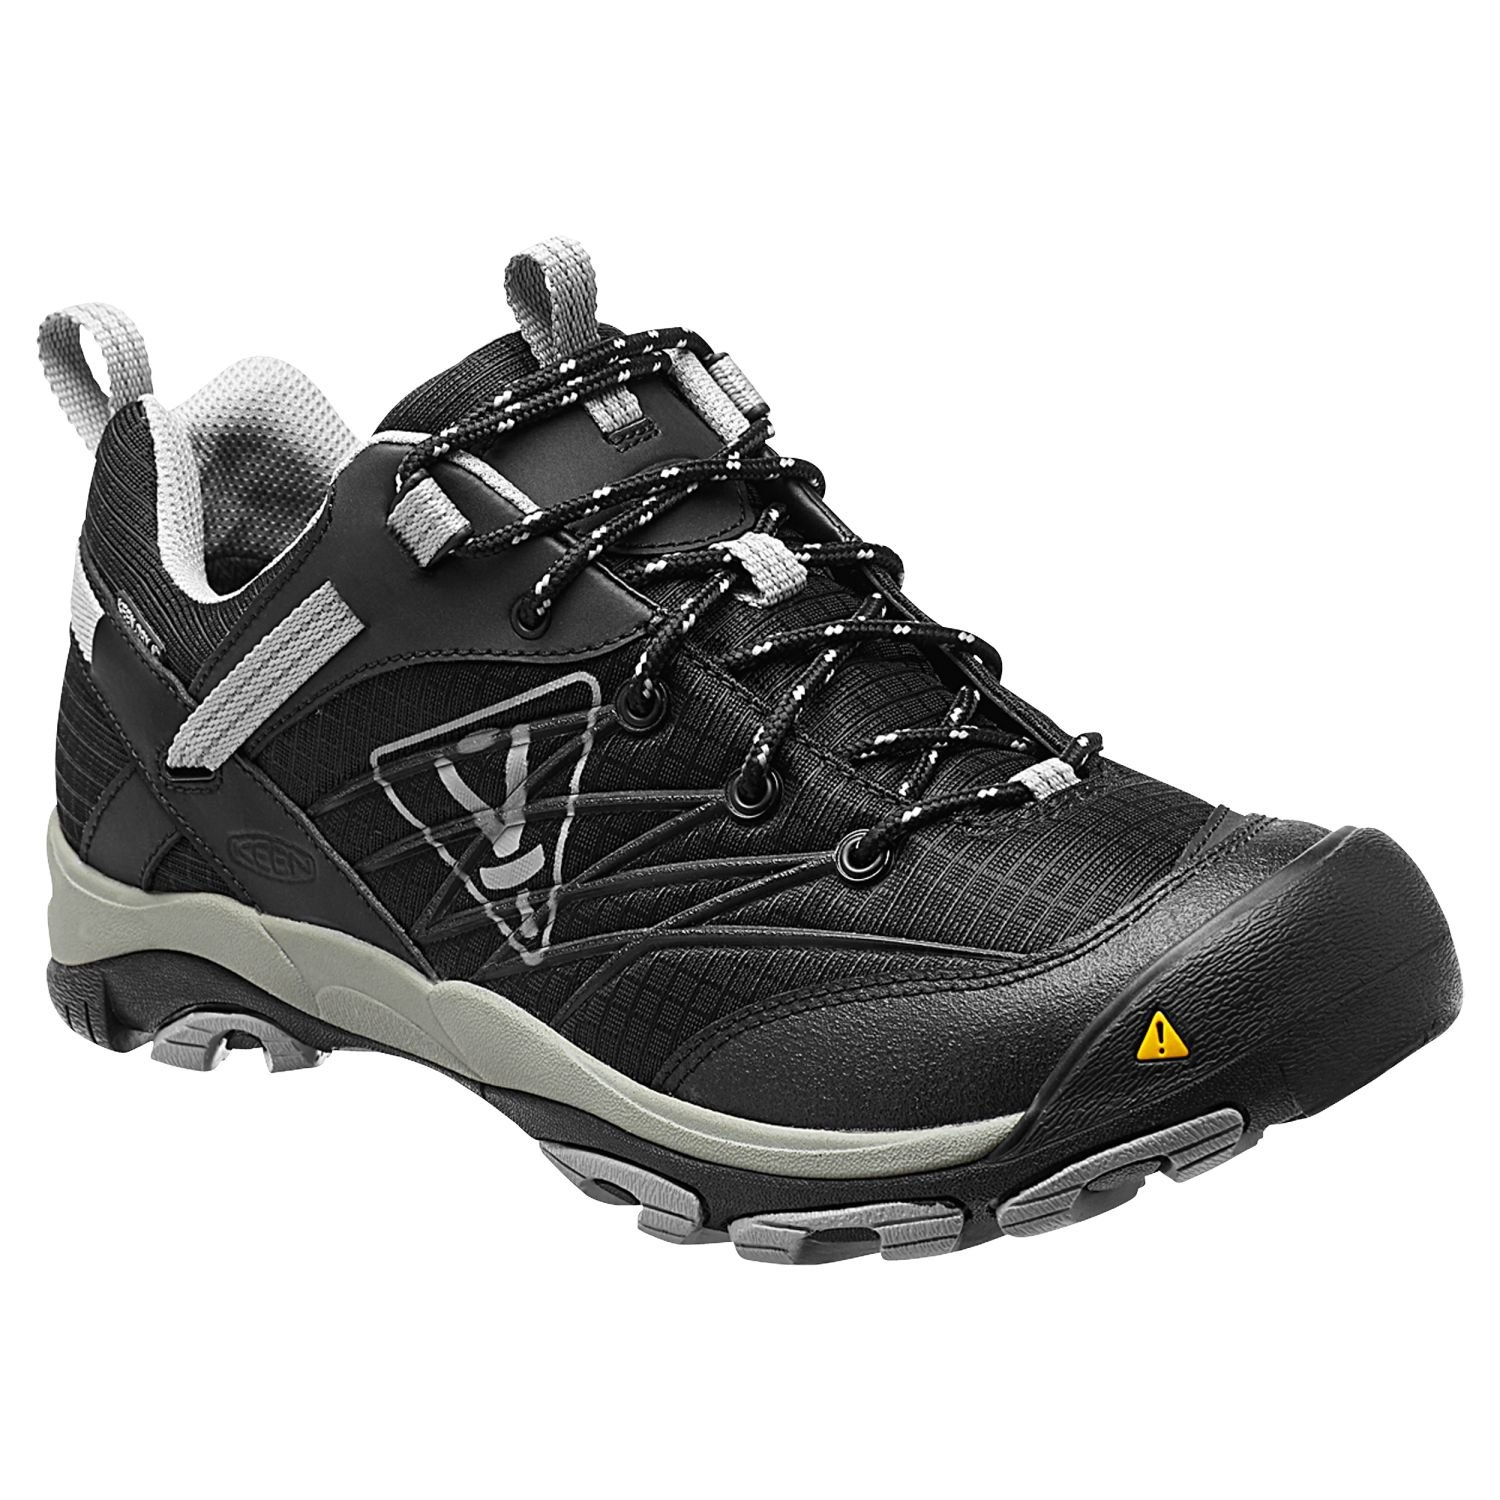 Keen Shoes Review